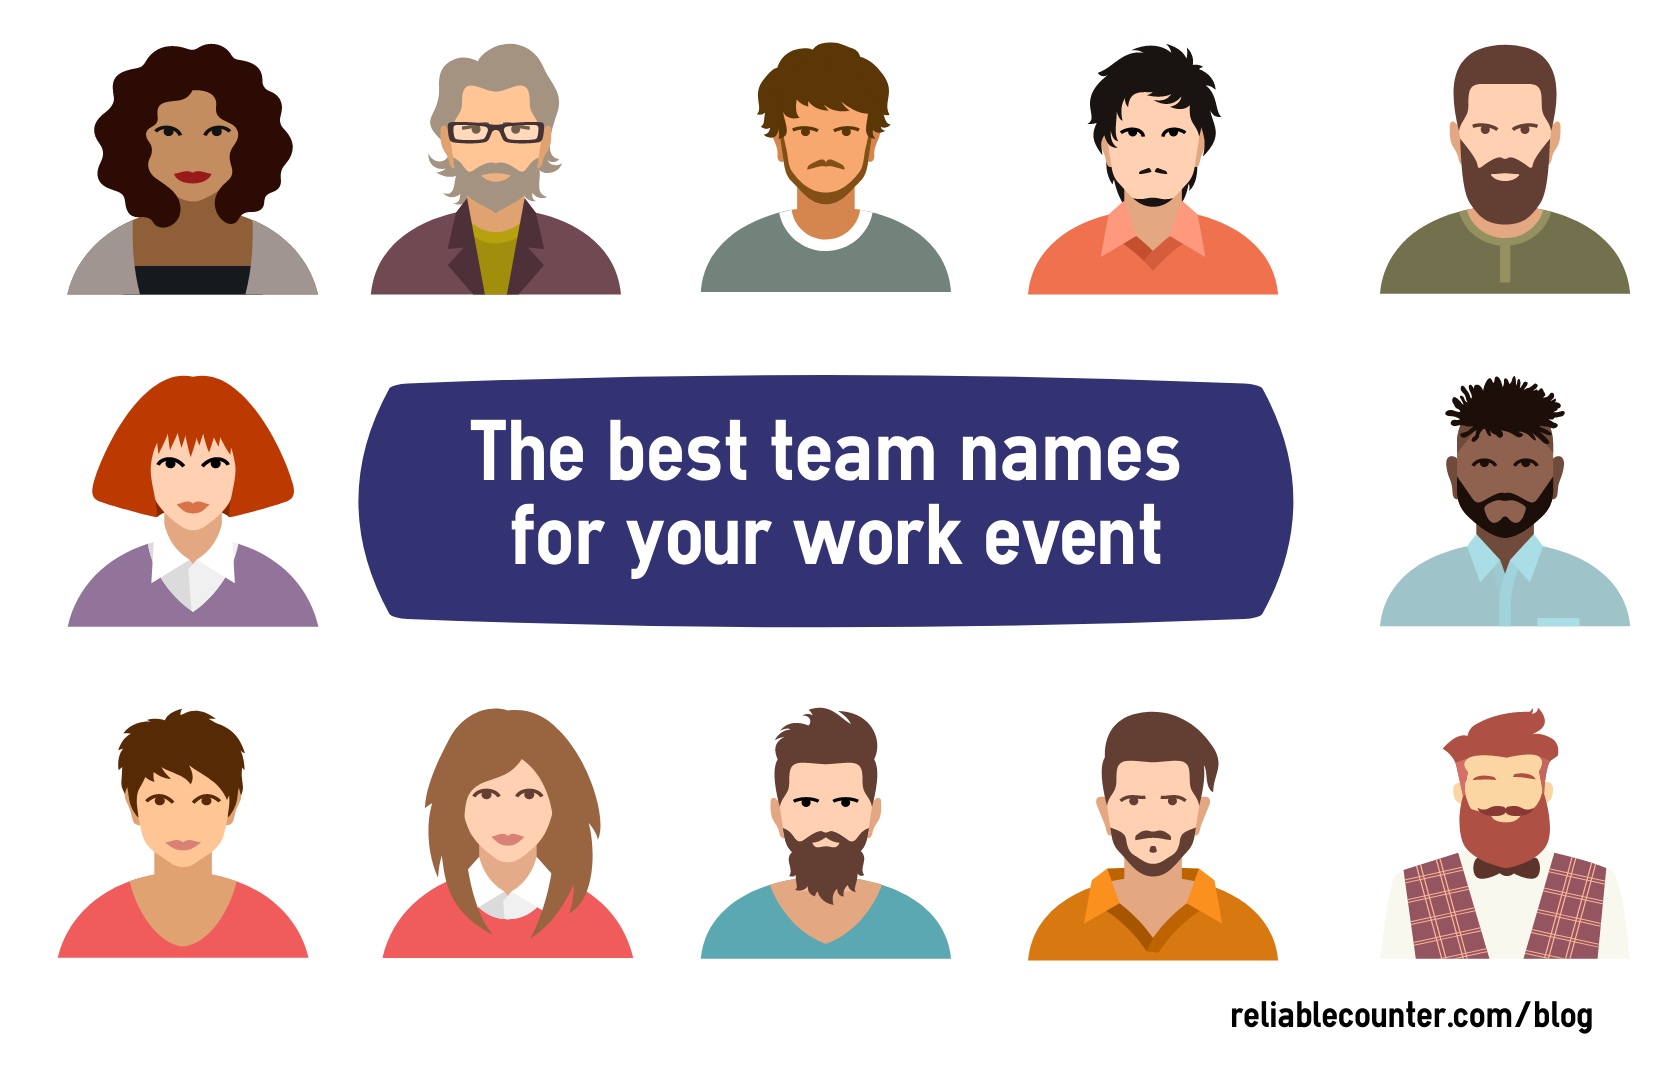 Choosing the best team names for your work event